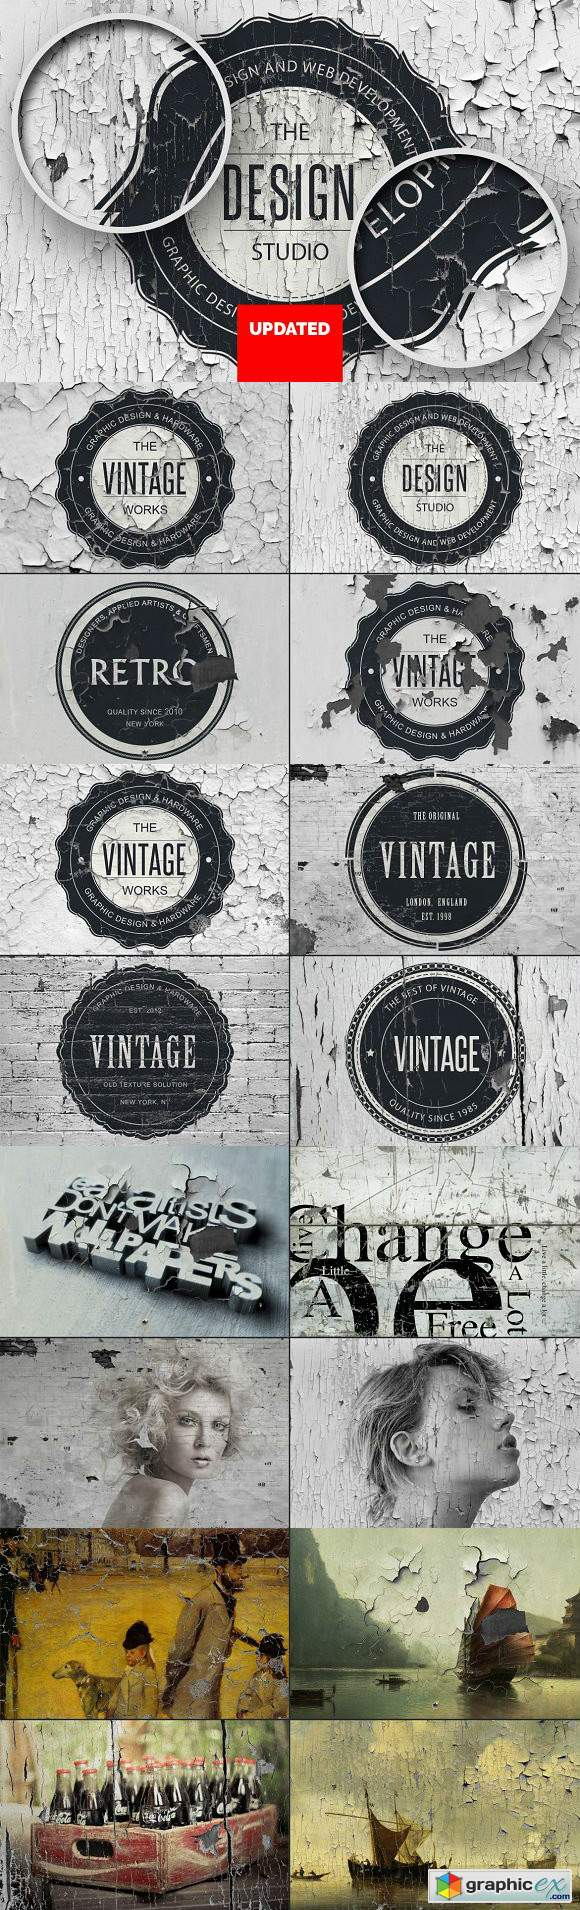 15 Vintage Overlay Textures Mock-up